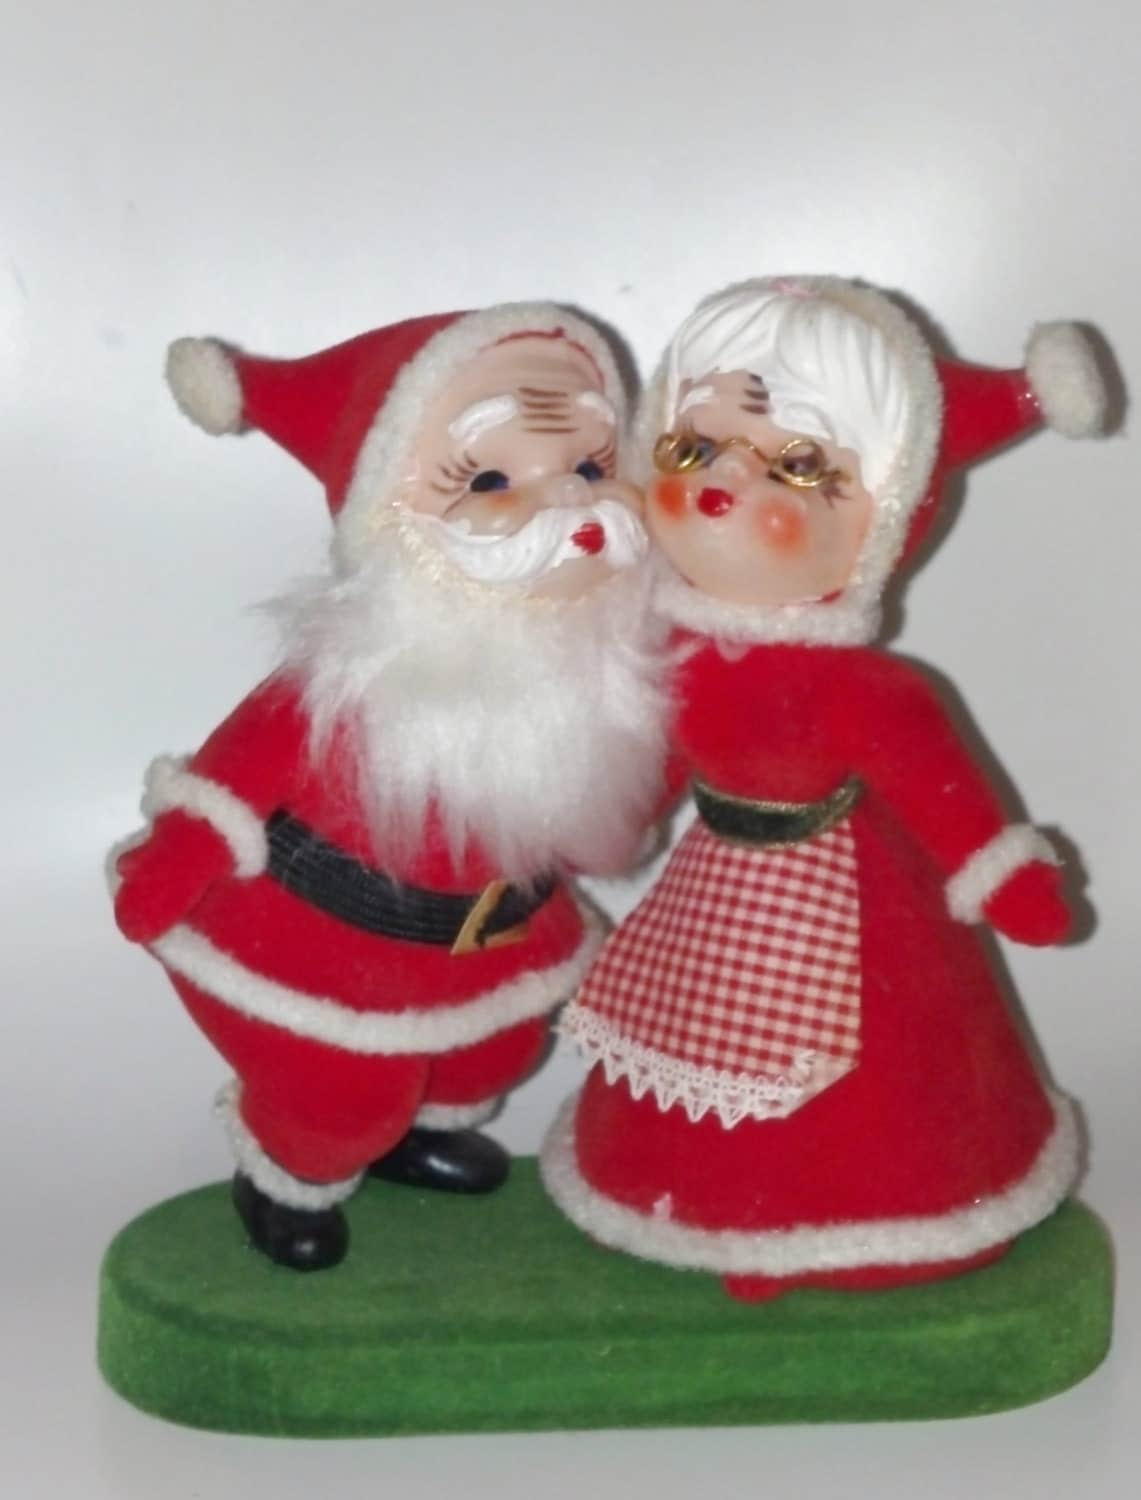 Vintage mr and mrs claus figurine s flocked by czamore